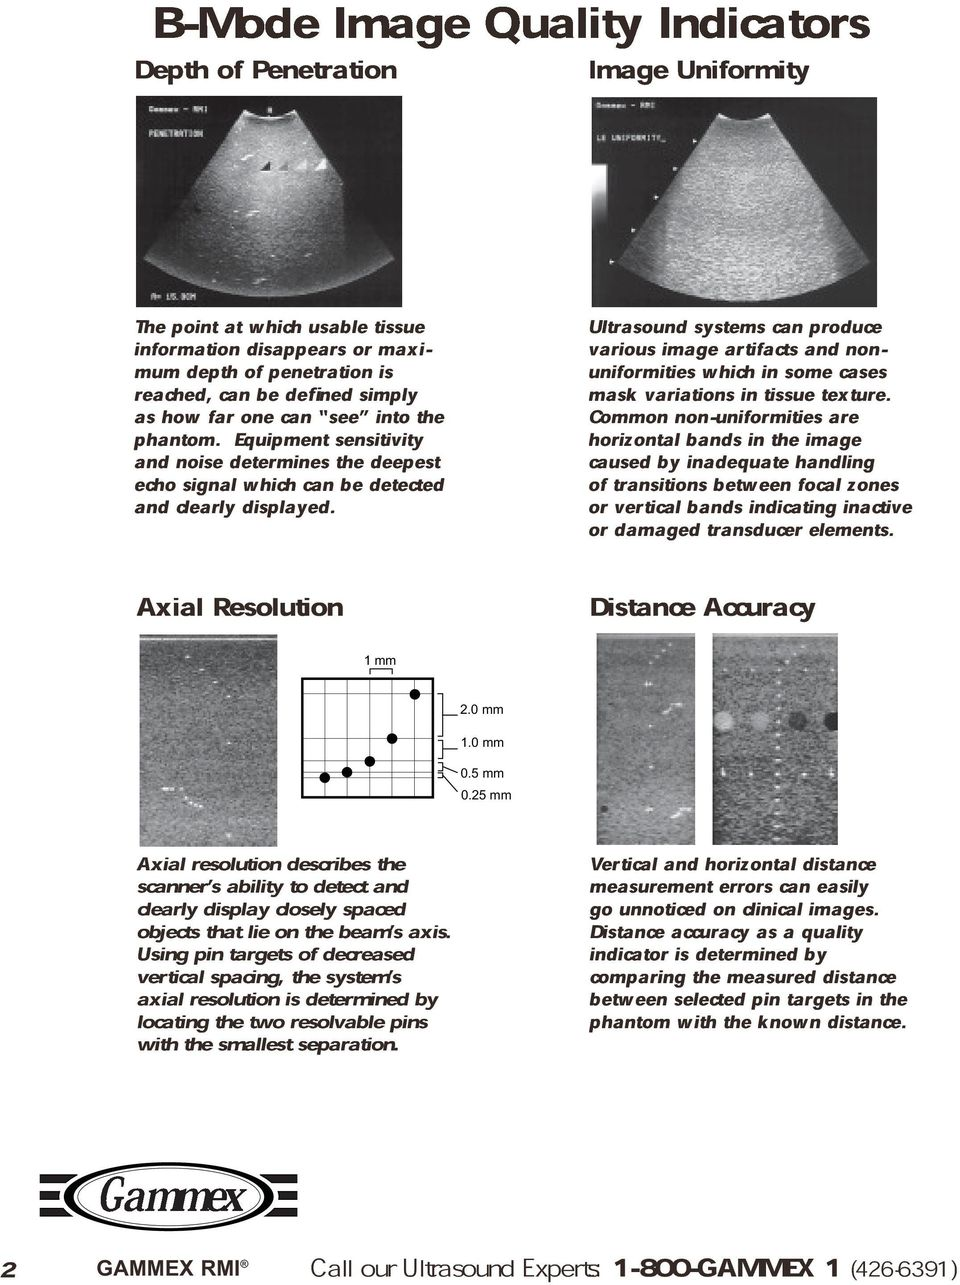 Axial Resolution Ultrasound various image systems artifacts can and produce uniformities which in some cases non- mask Common variations non-uniformities in tissue texture.